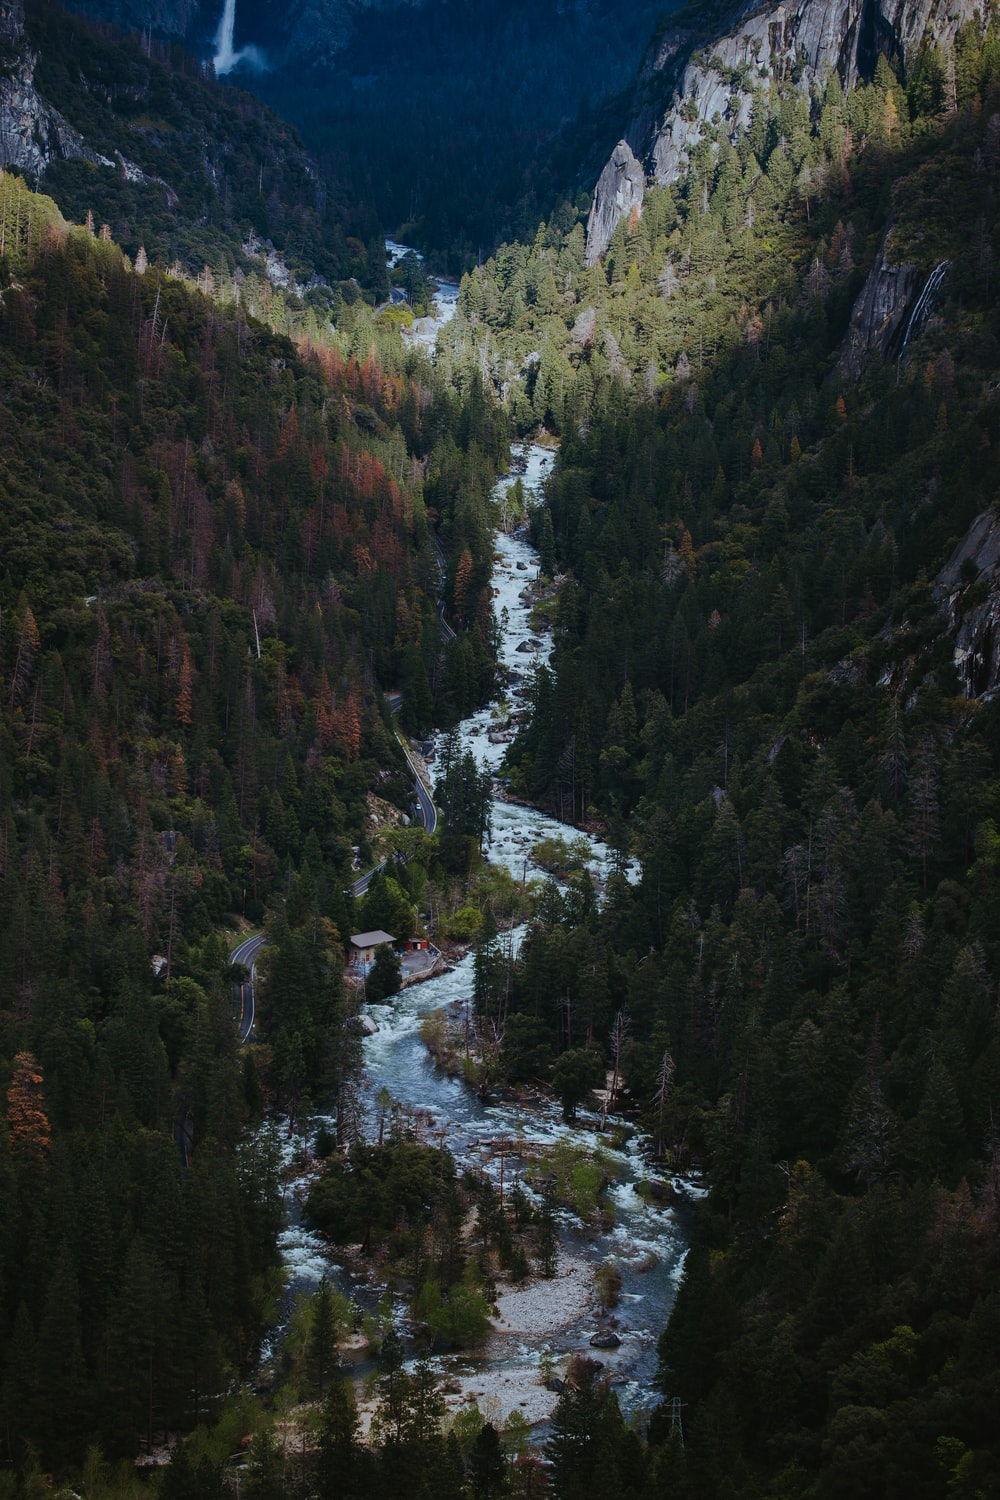 creek in between mountains covered with pine trees at daytime